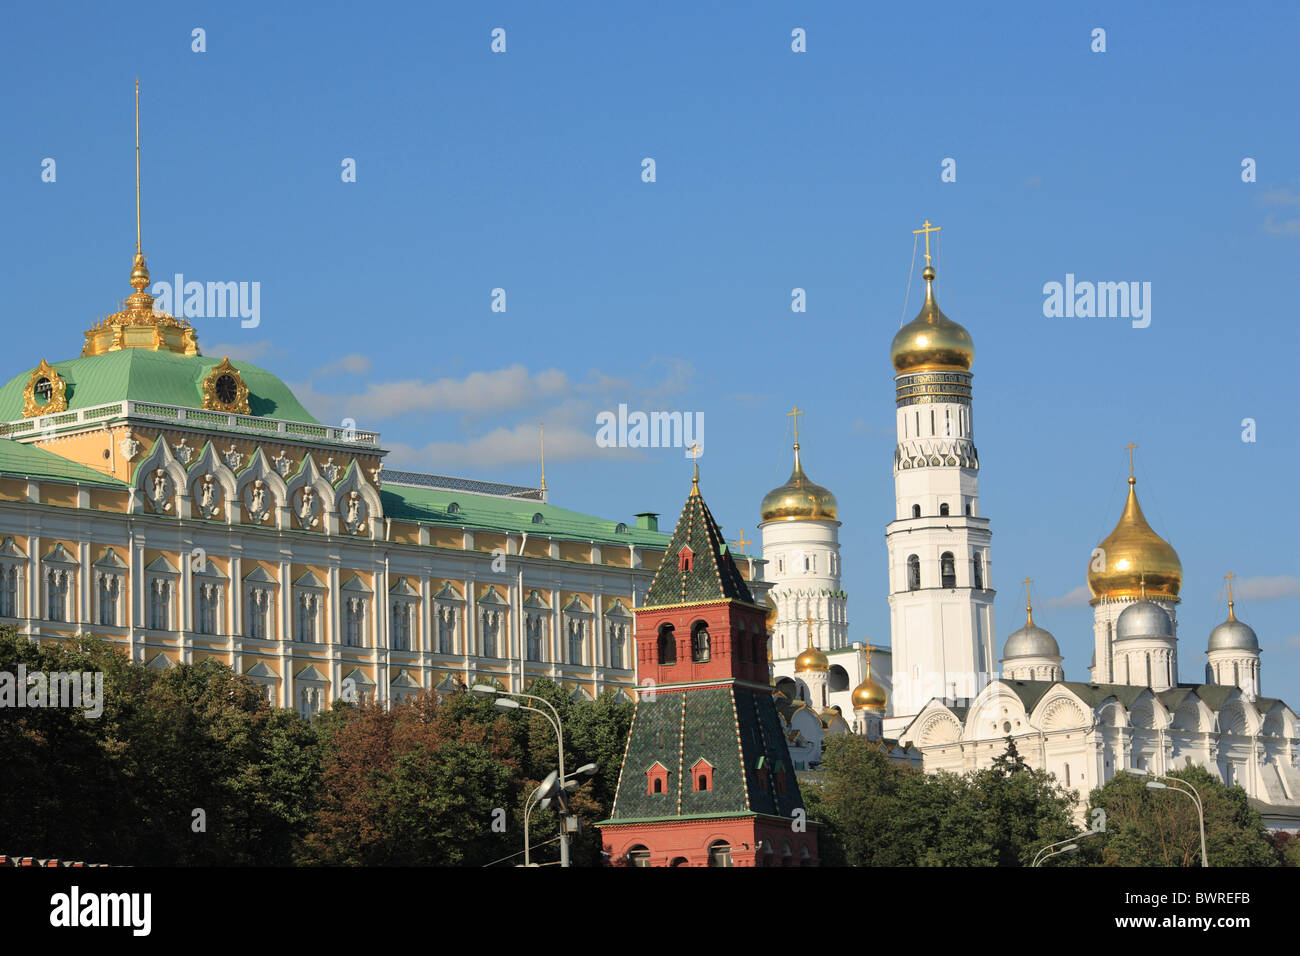 Moscow Russia Kremlin Moskva River Russian Architecture Building Blue Sky Embankment Tourist City T